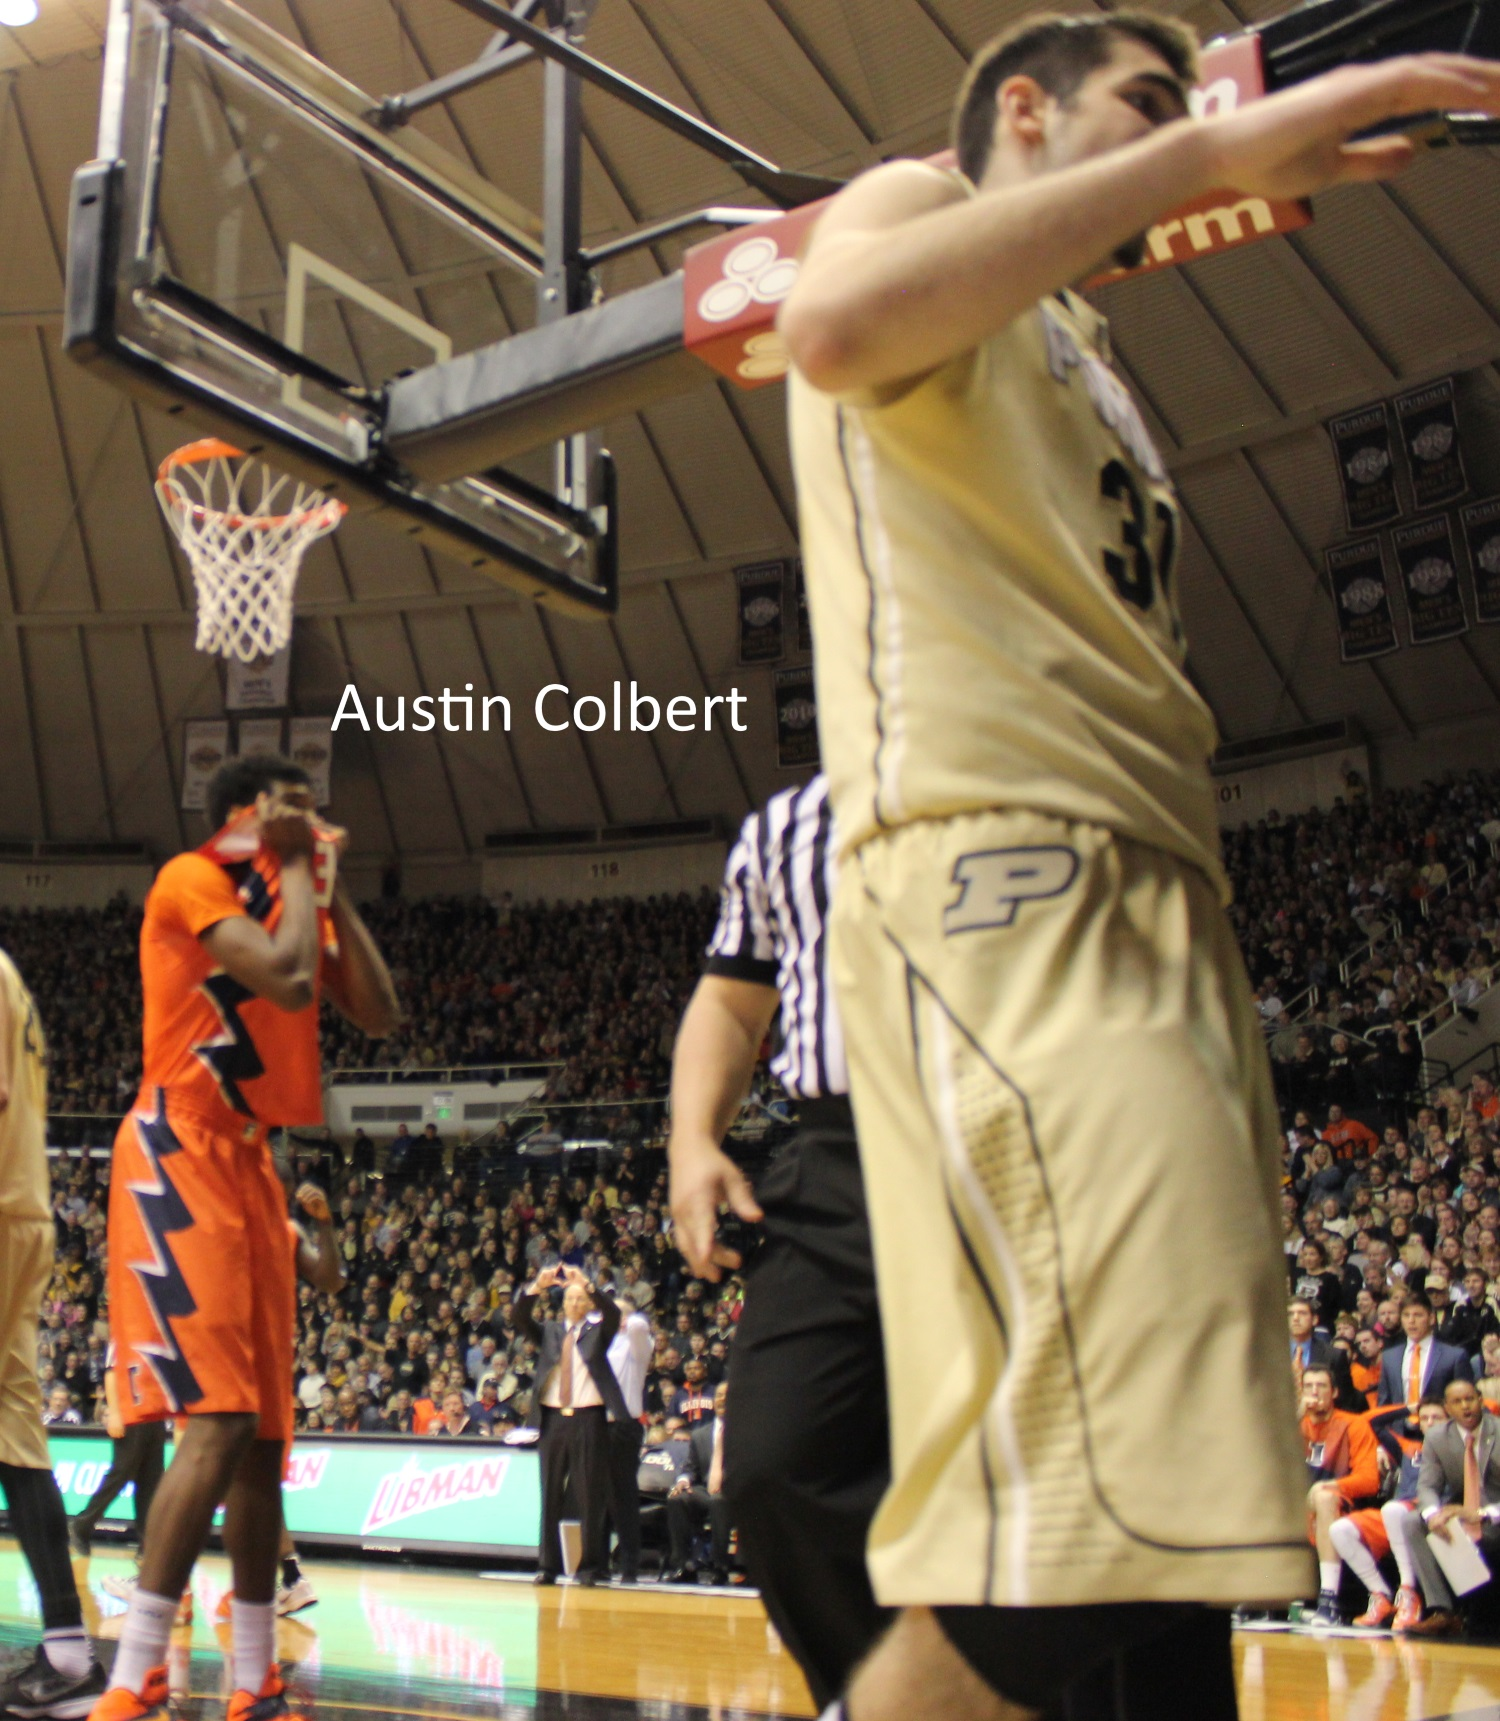 Austin Colbert could not believe the call